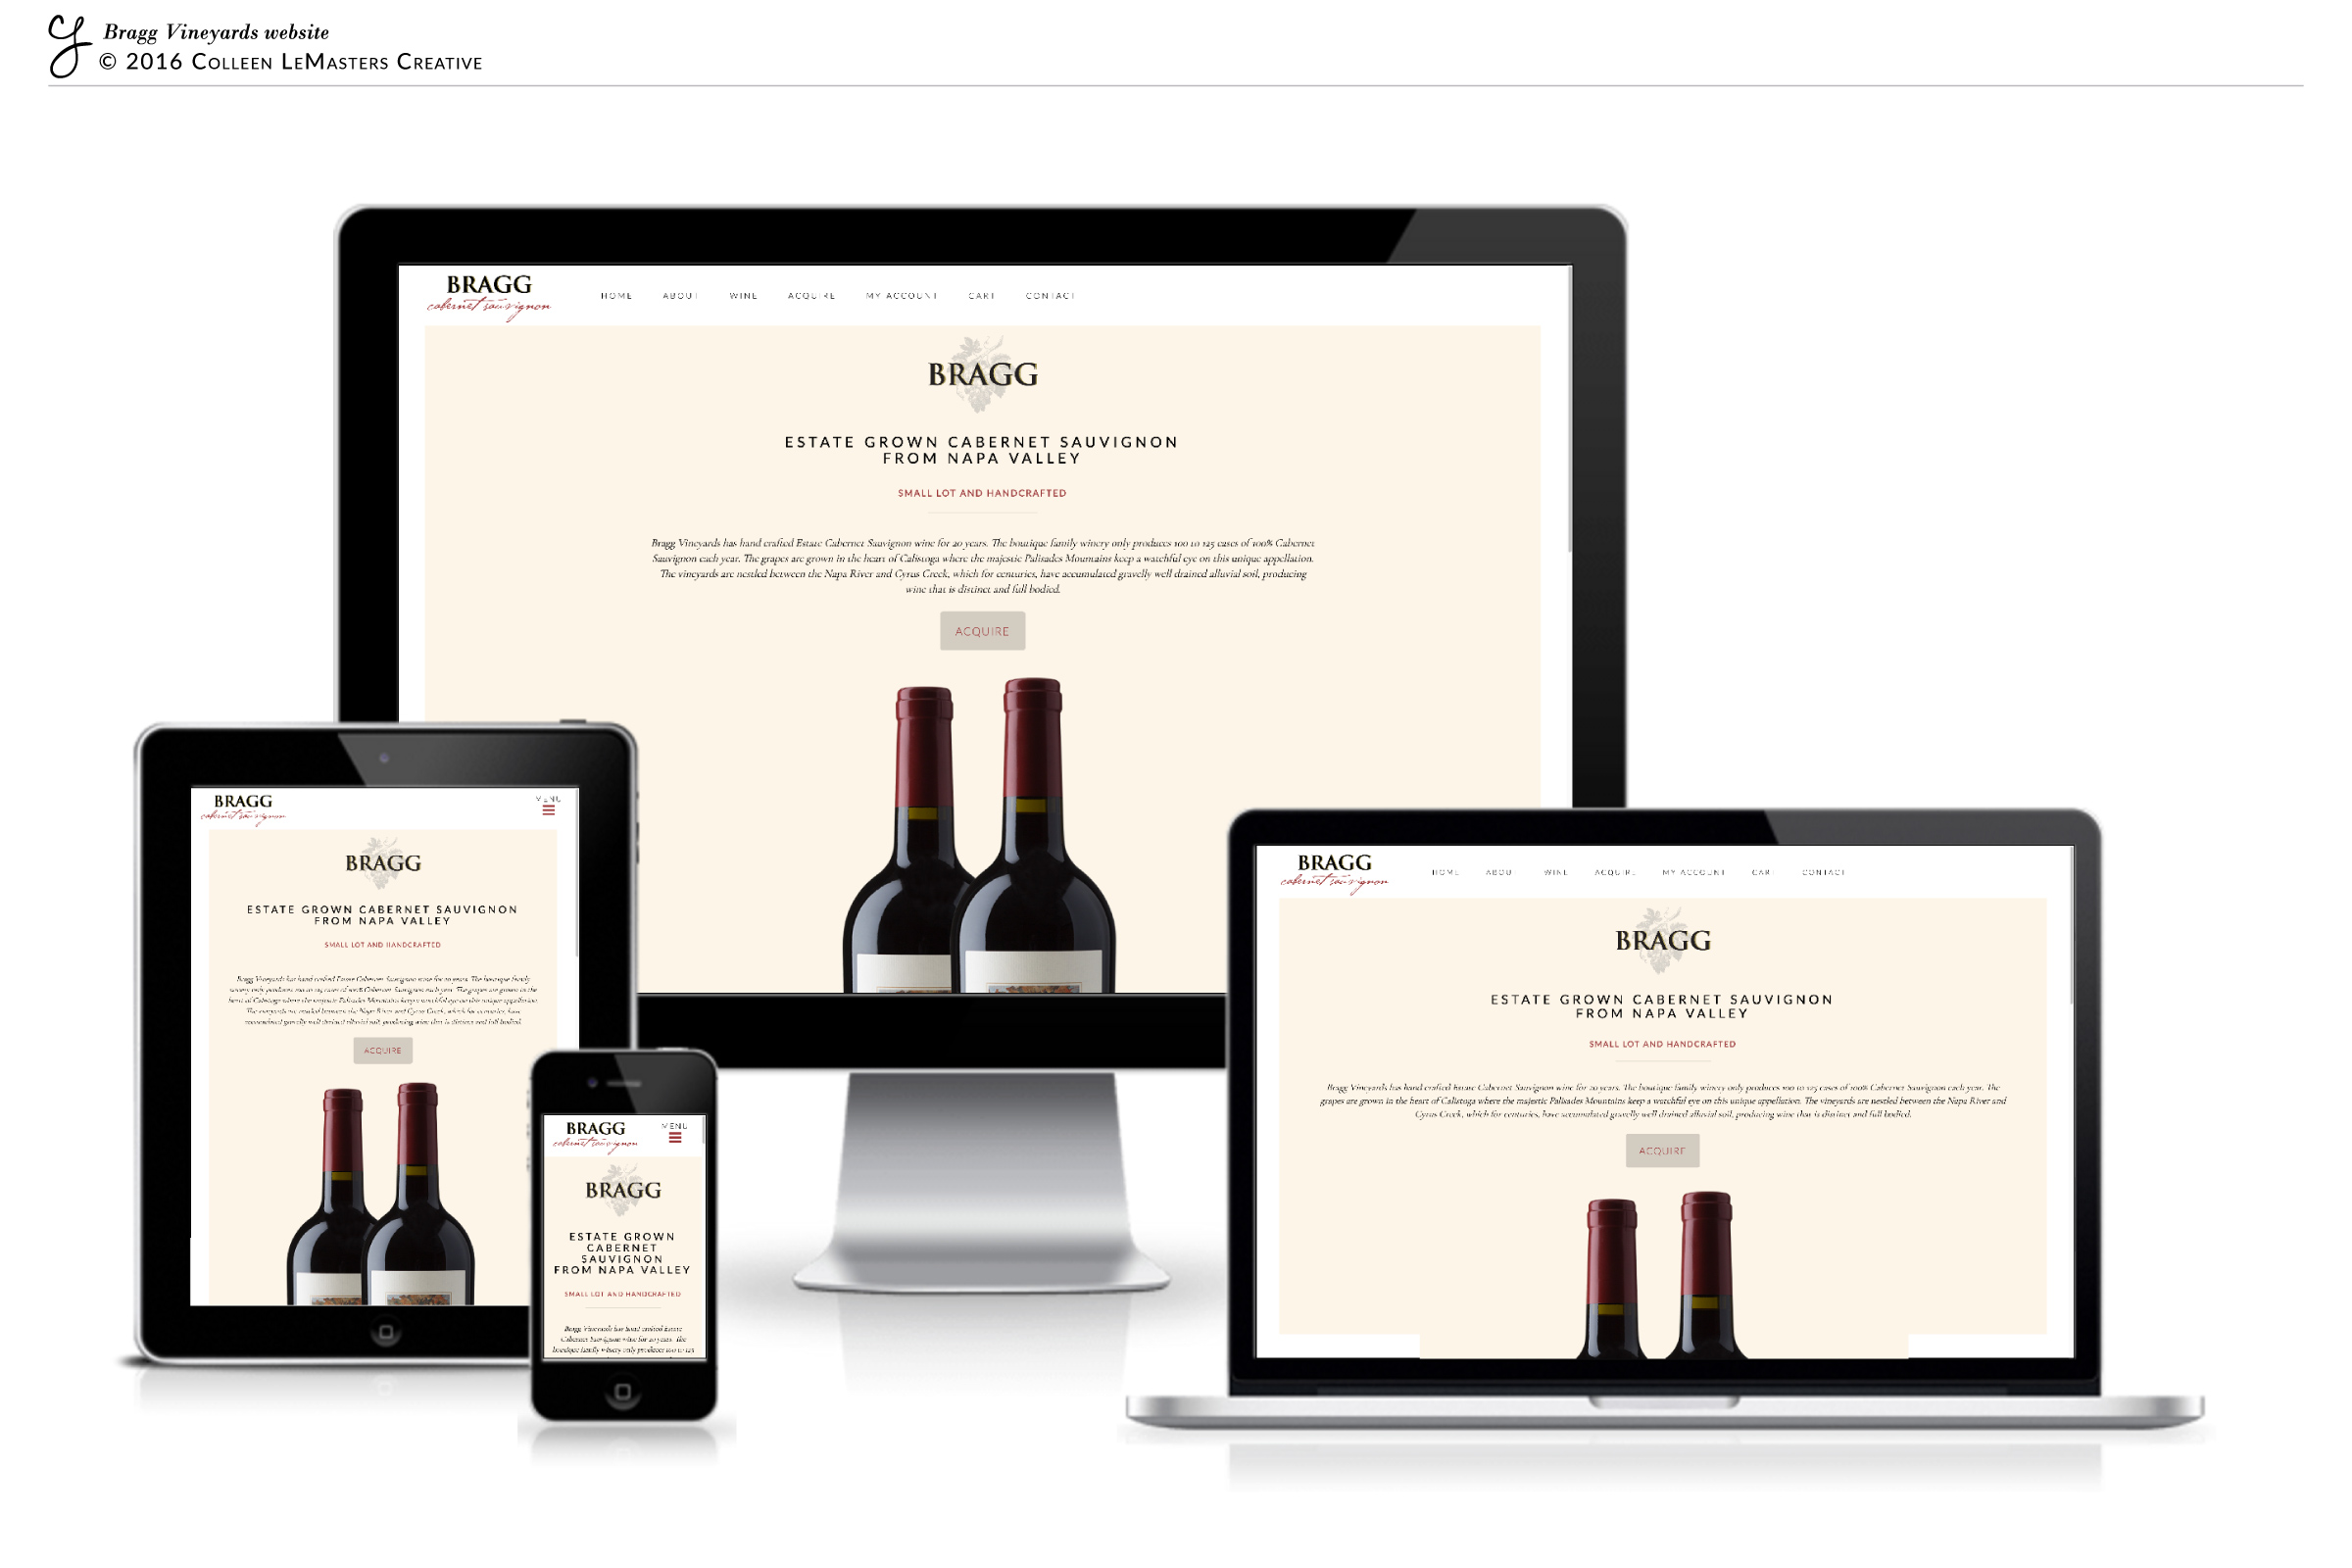 bragg-vineyards_clcreative-website